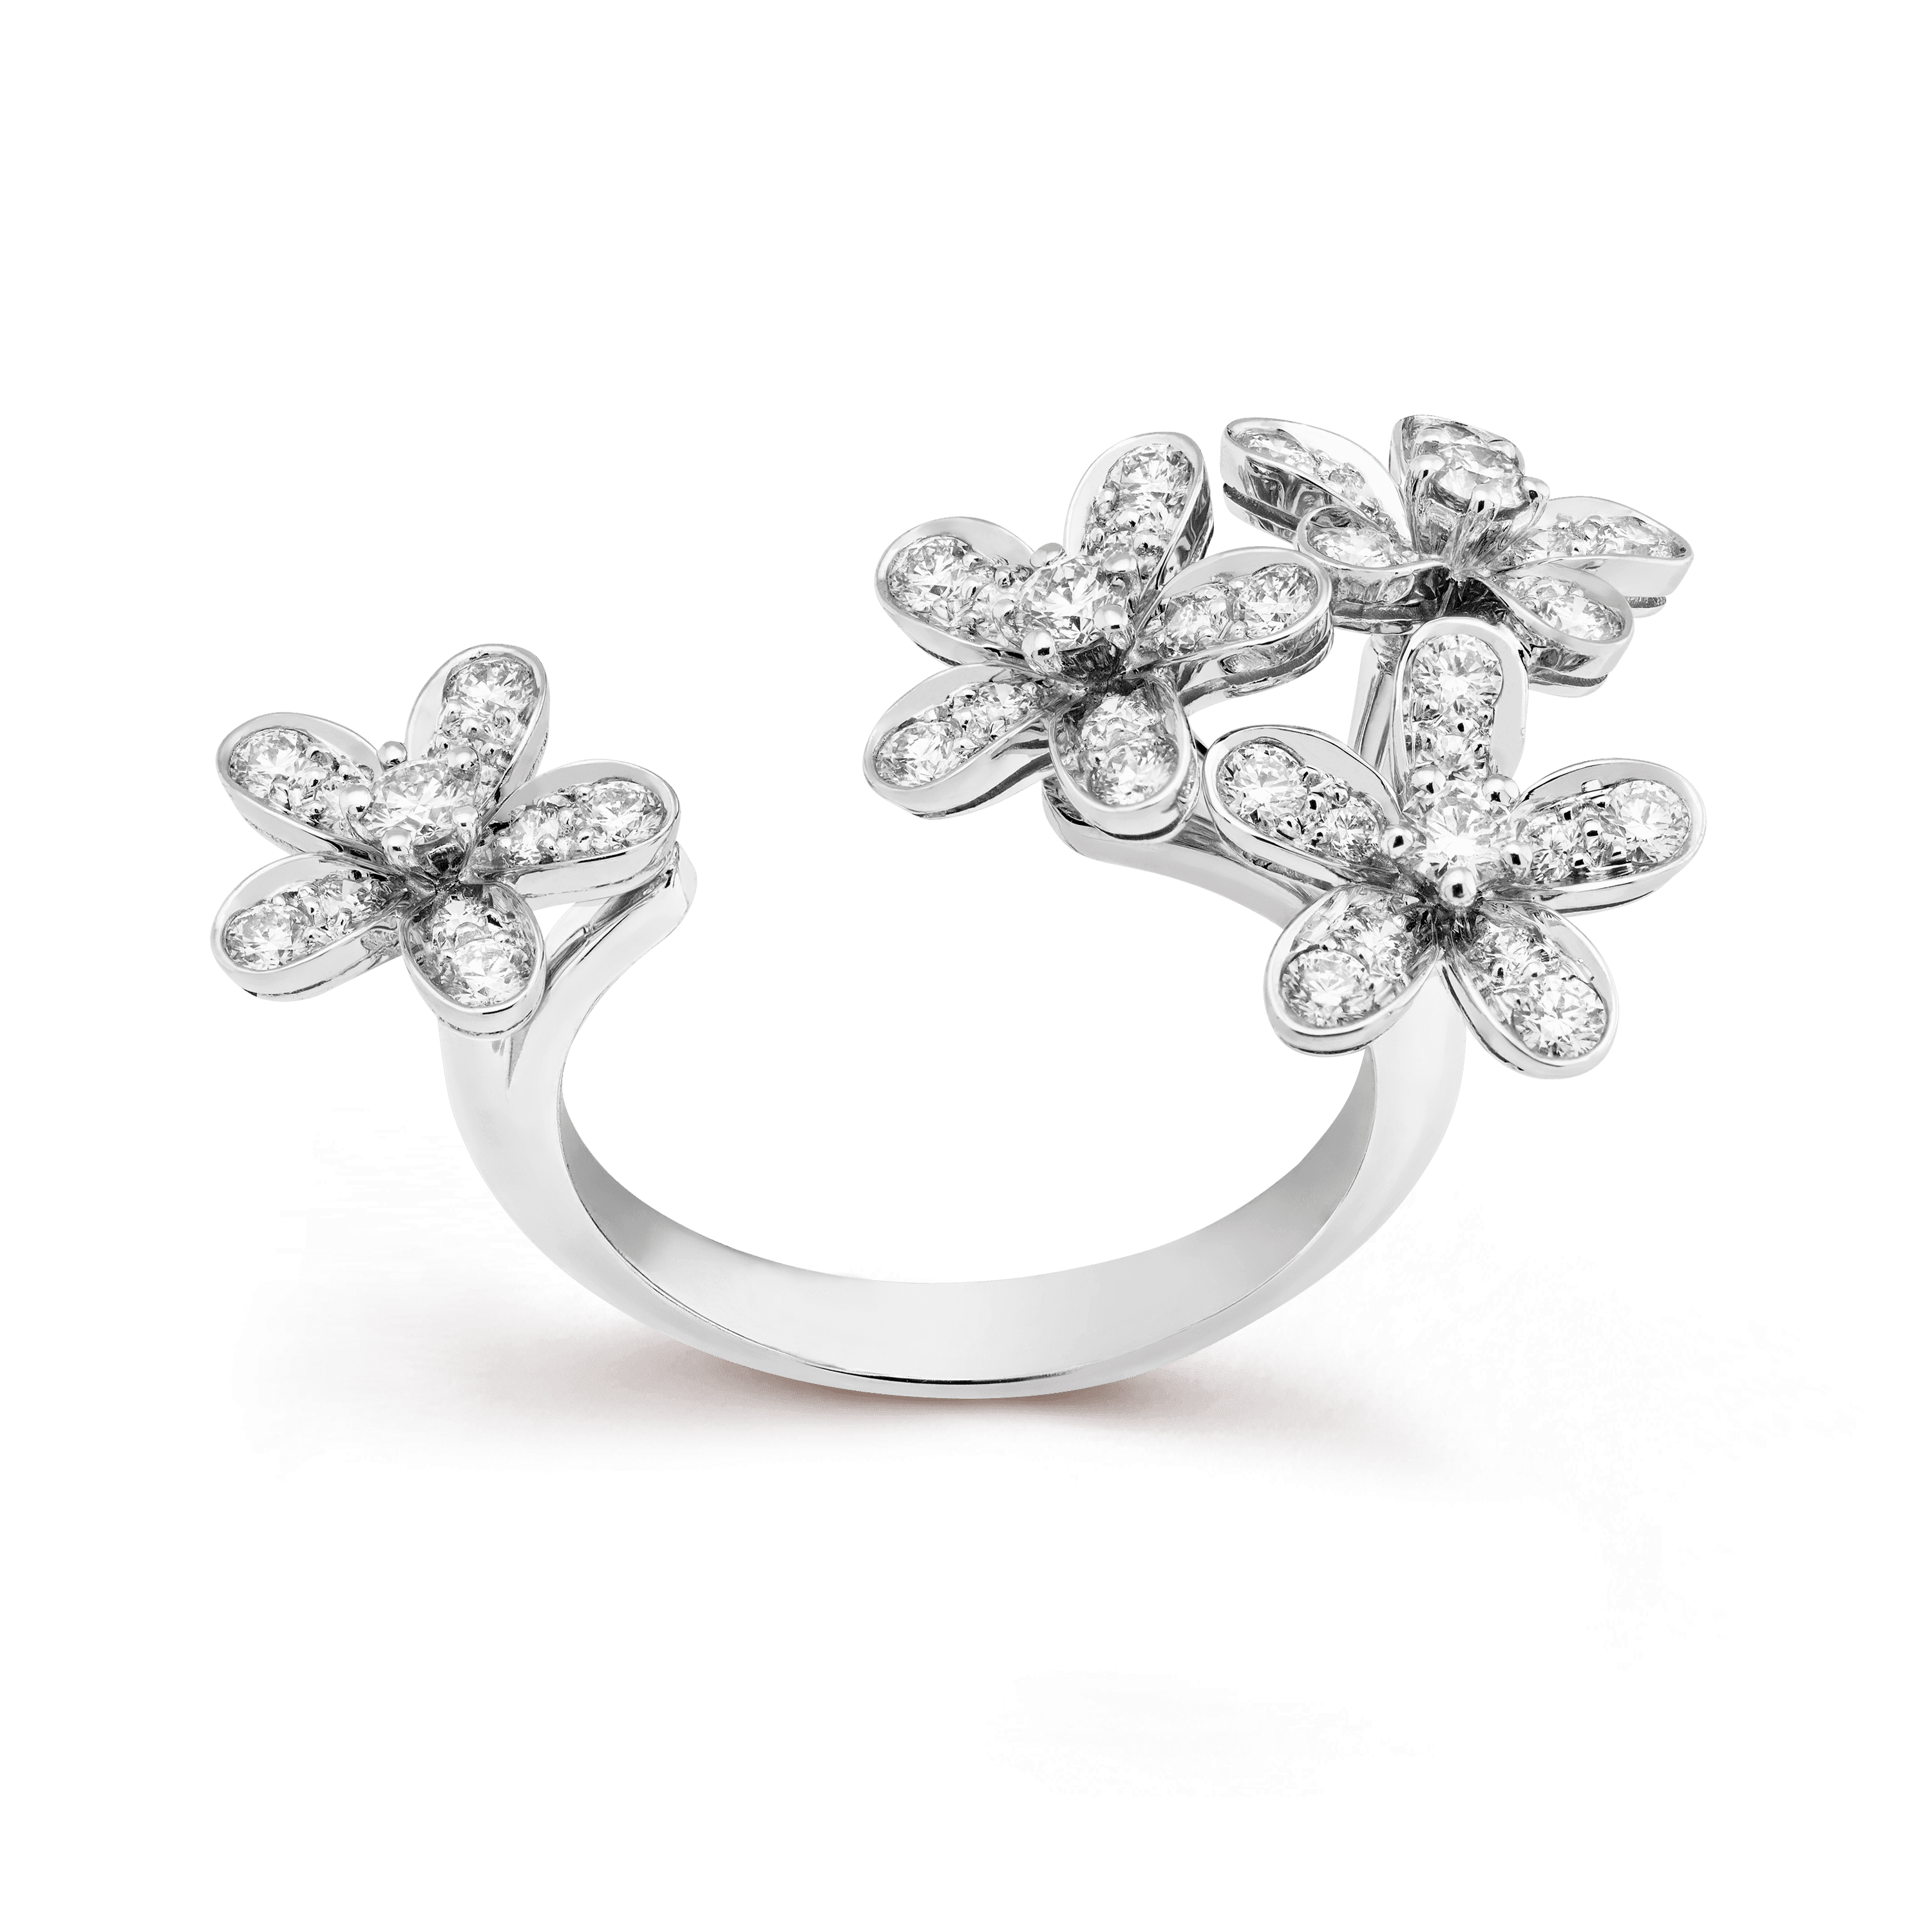 Anel Between the Finger Socrate, - Front View - VCARB14500 - Van Cleef & Arpels